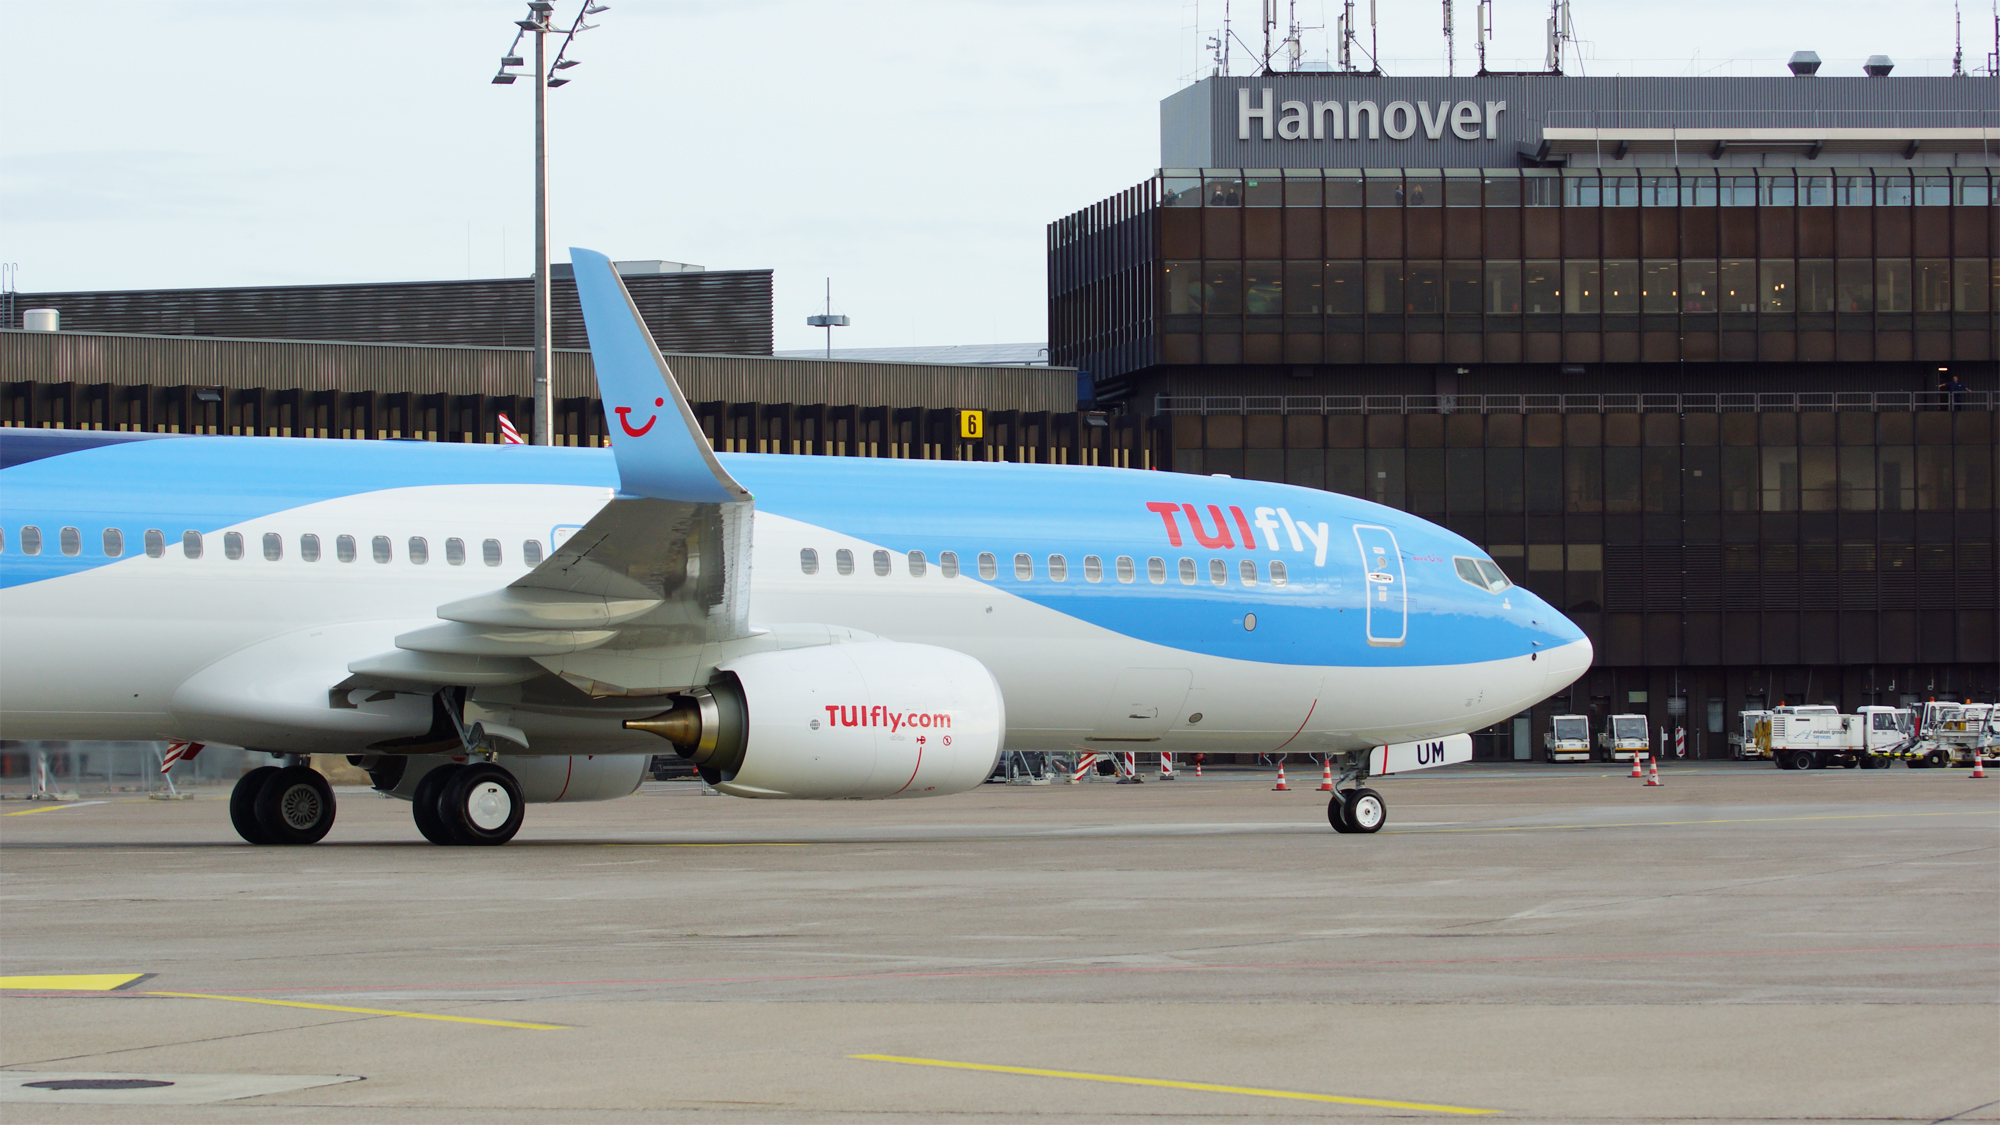 TUI joins airline industry group A4E as sustainability shoots up the agenda